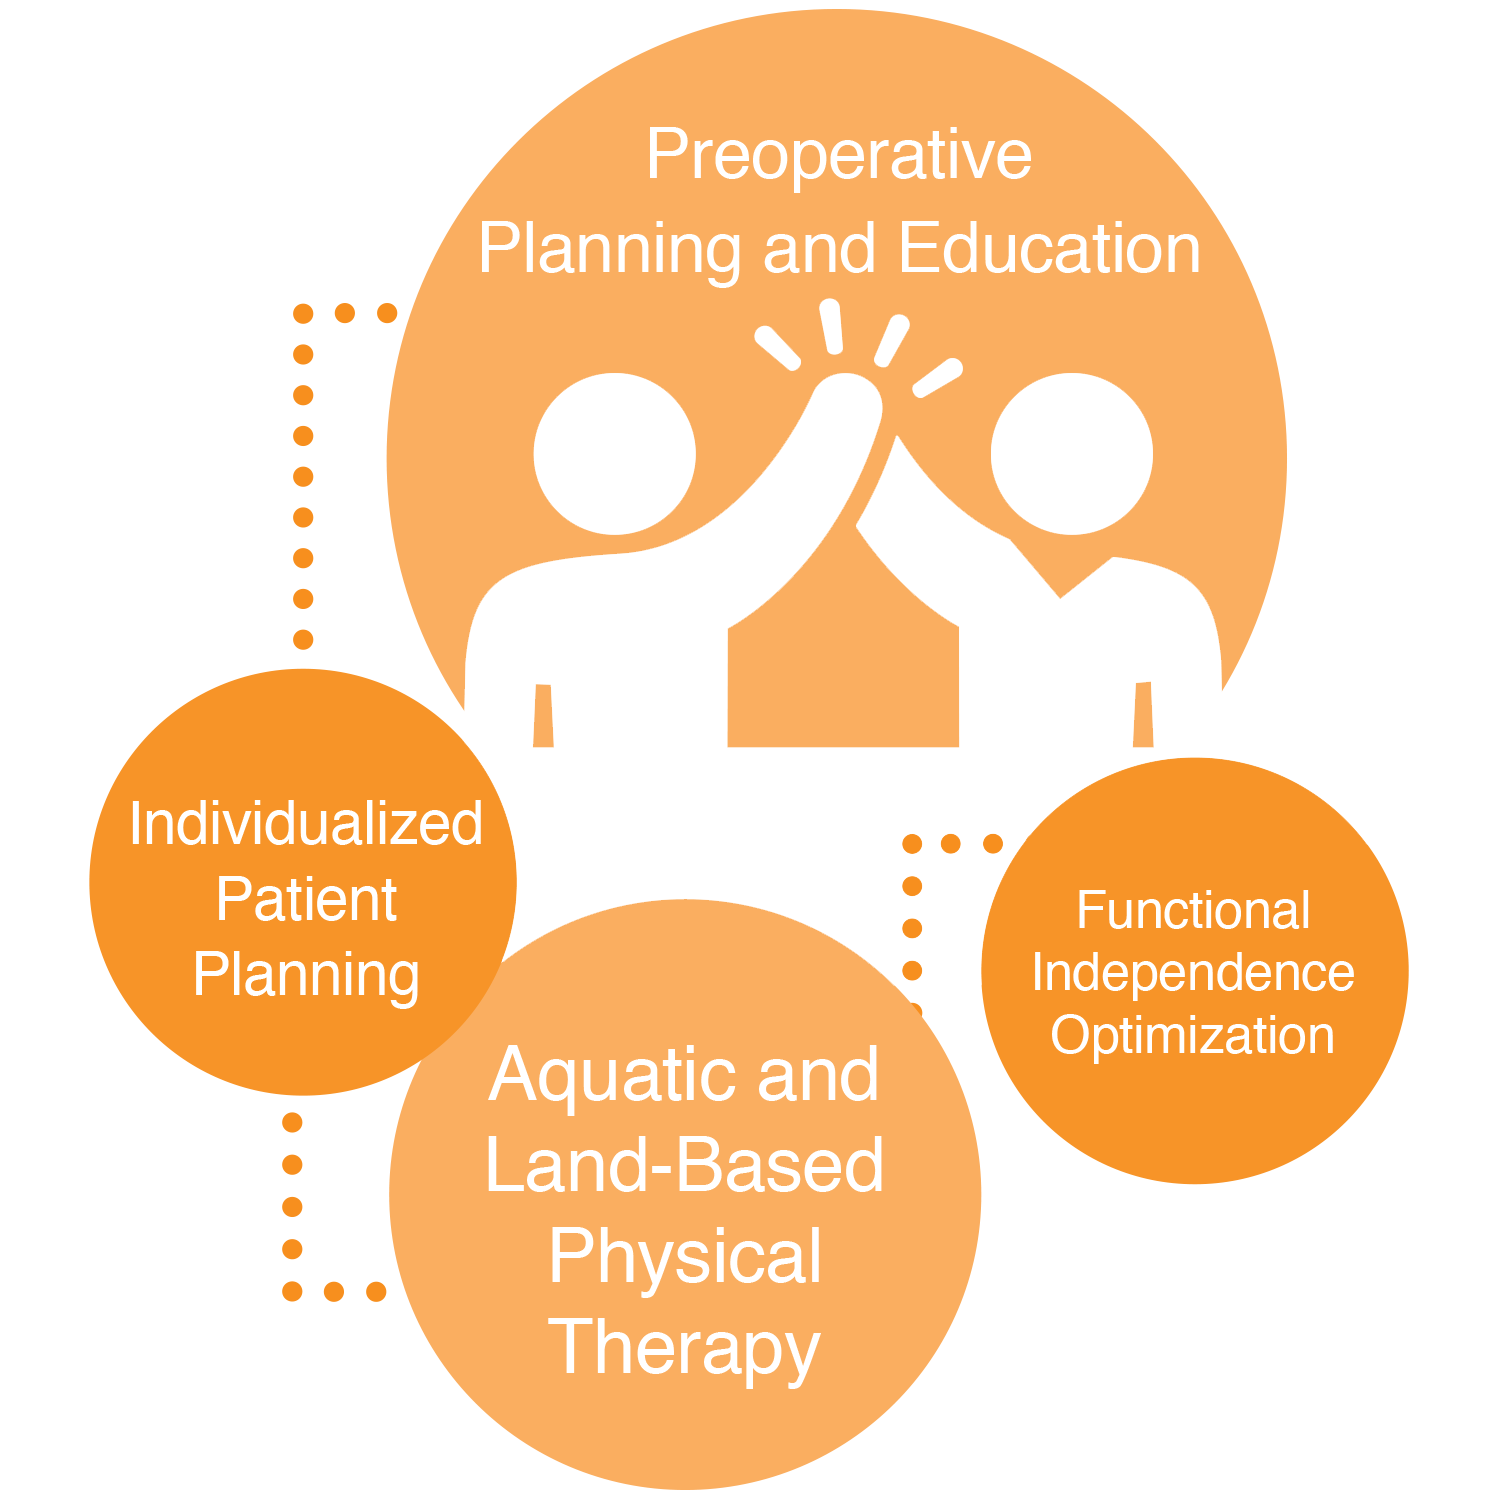 Preoperative Planning and Education graphic